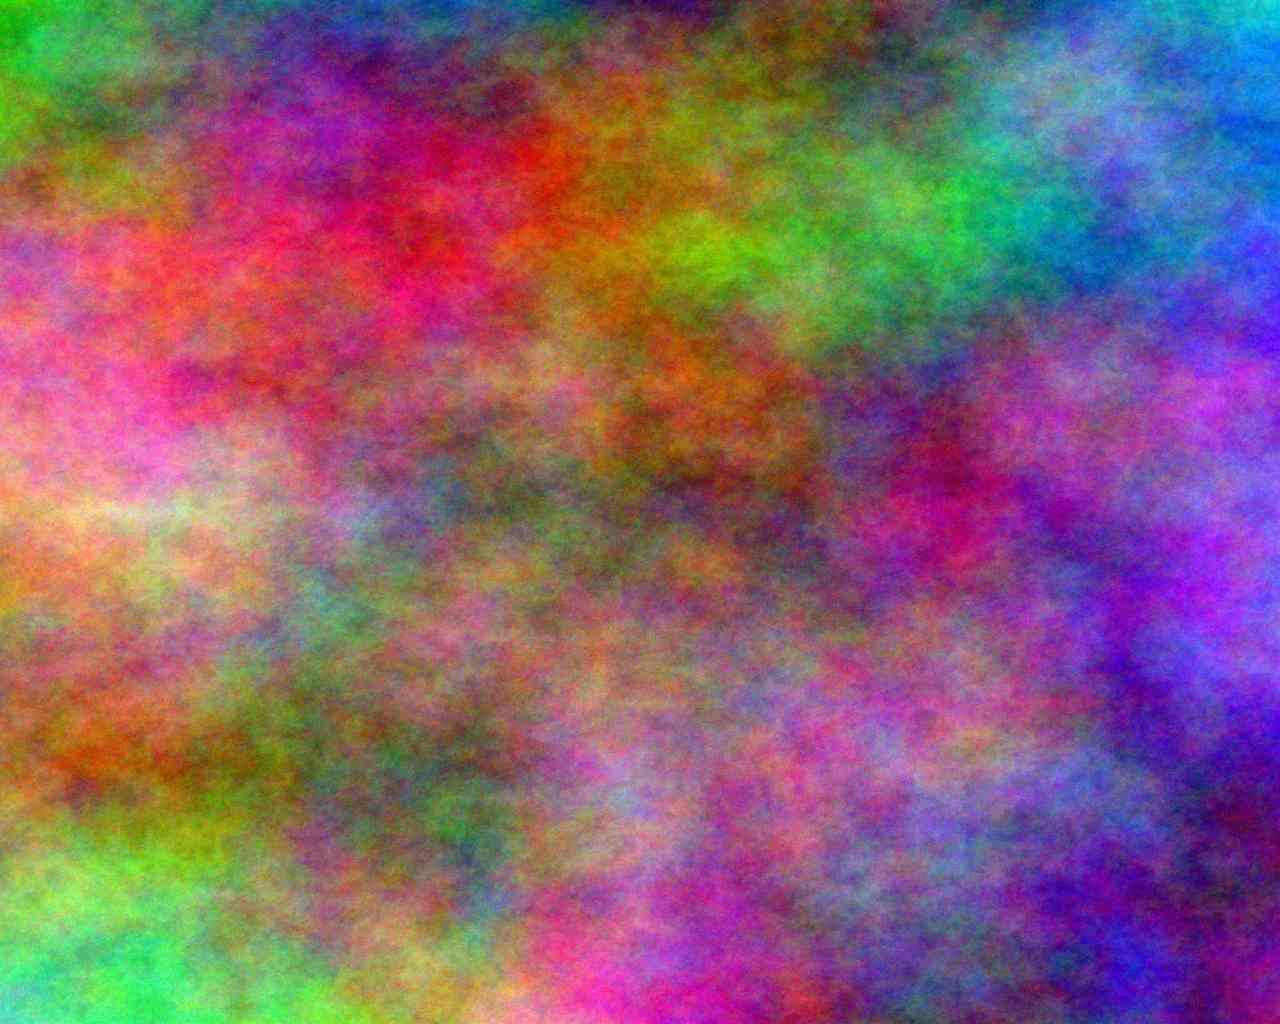 Plasma colors background image wallpaper or texture free for Web page background colors